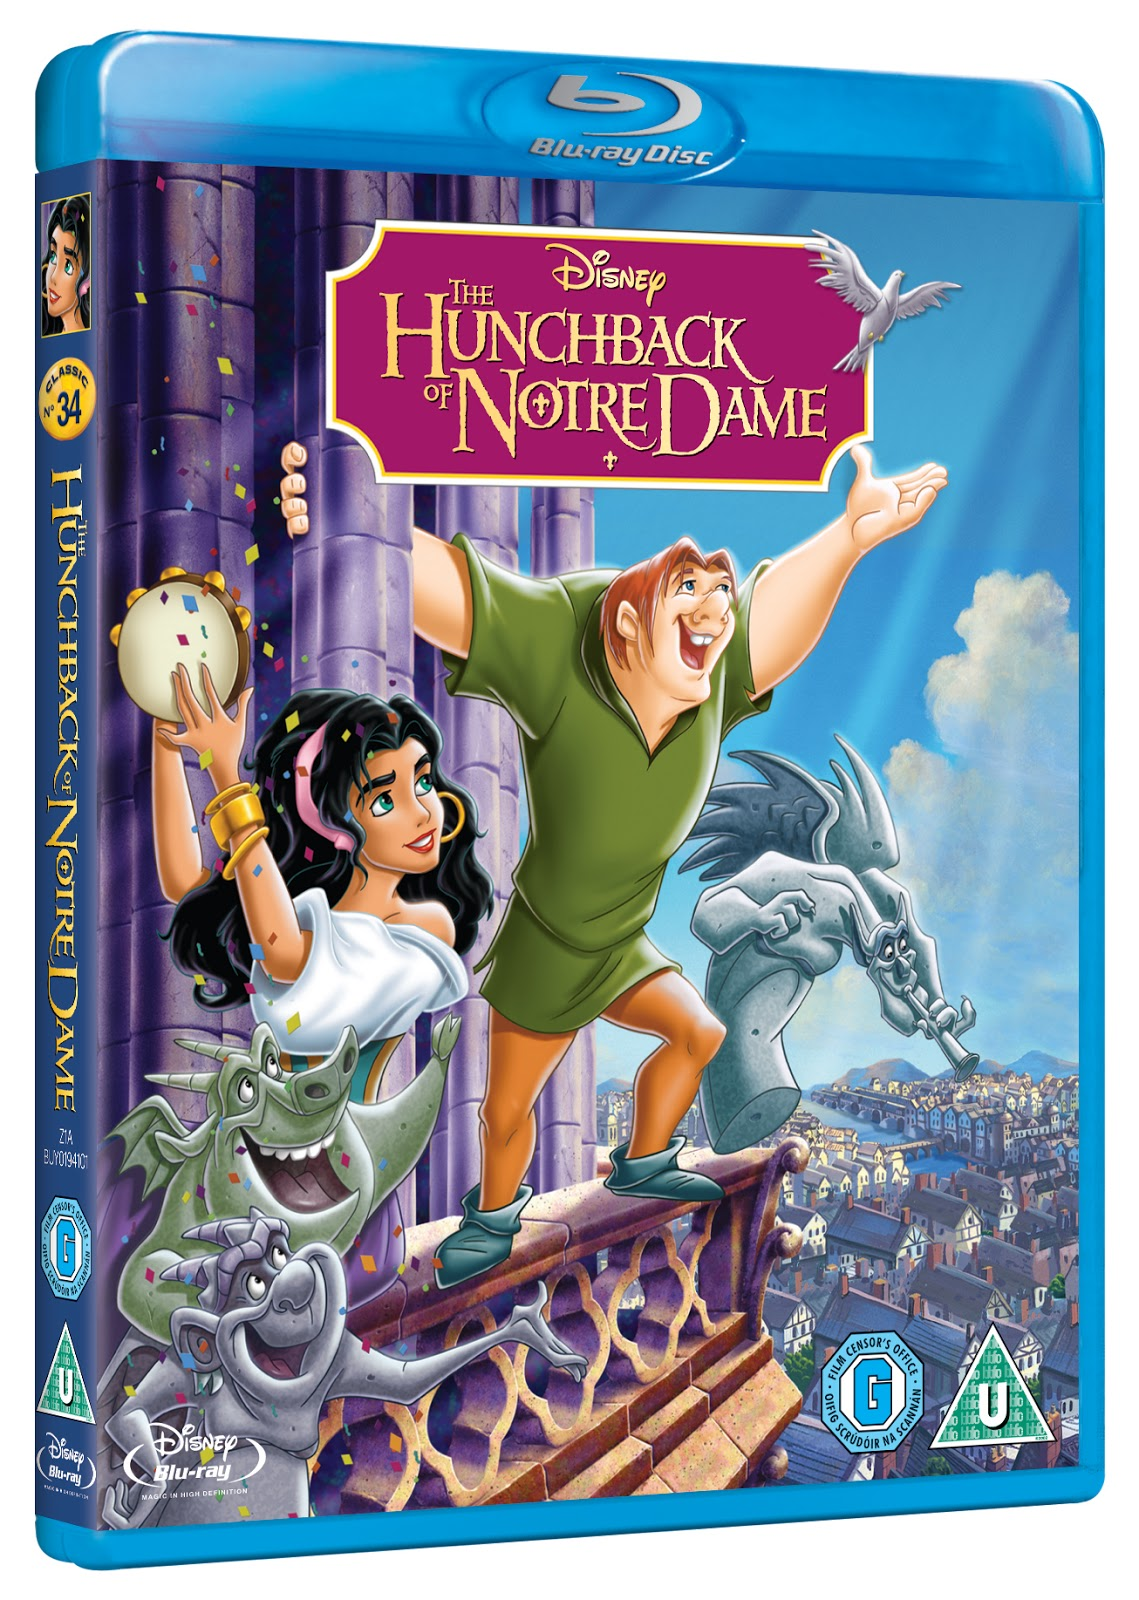 the hunchback of notre dame essay The hunchback of notre dame write an essay in which you support your opinion, using examples from the film, and from what you know about oppression to explain in detail why the film could be used avoid retelling the story, or plot.